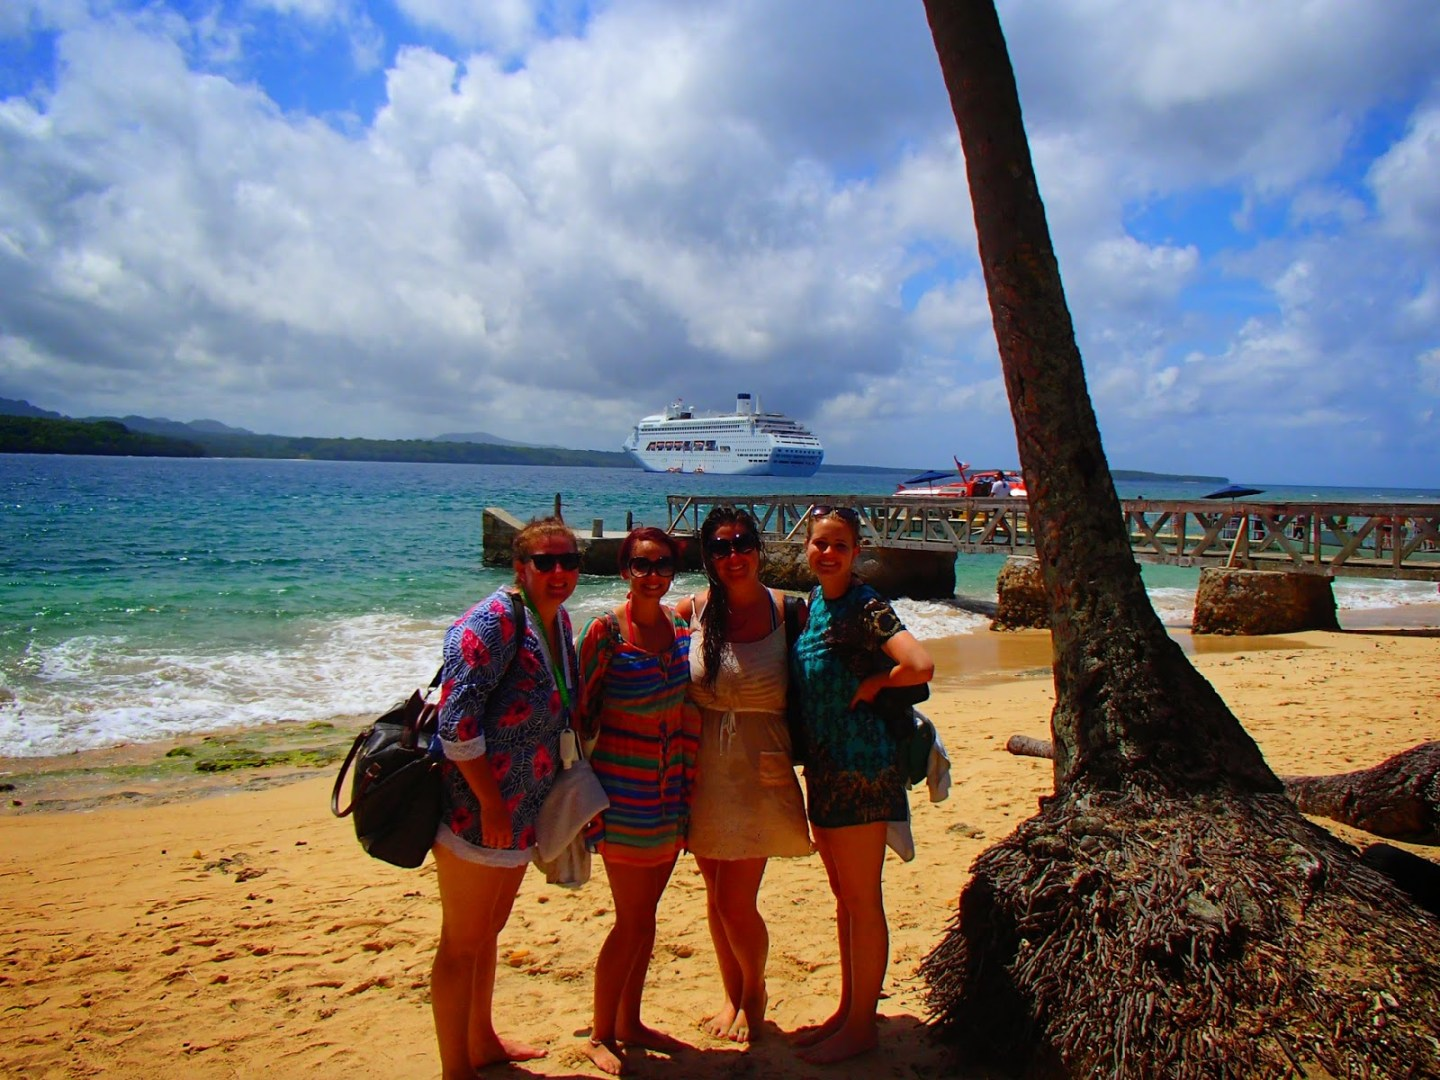 Girls on P and O South Pacific Cruise at Wala